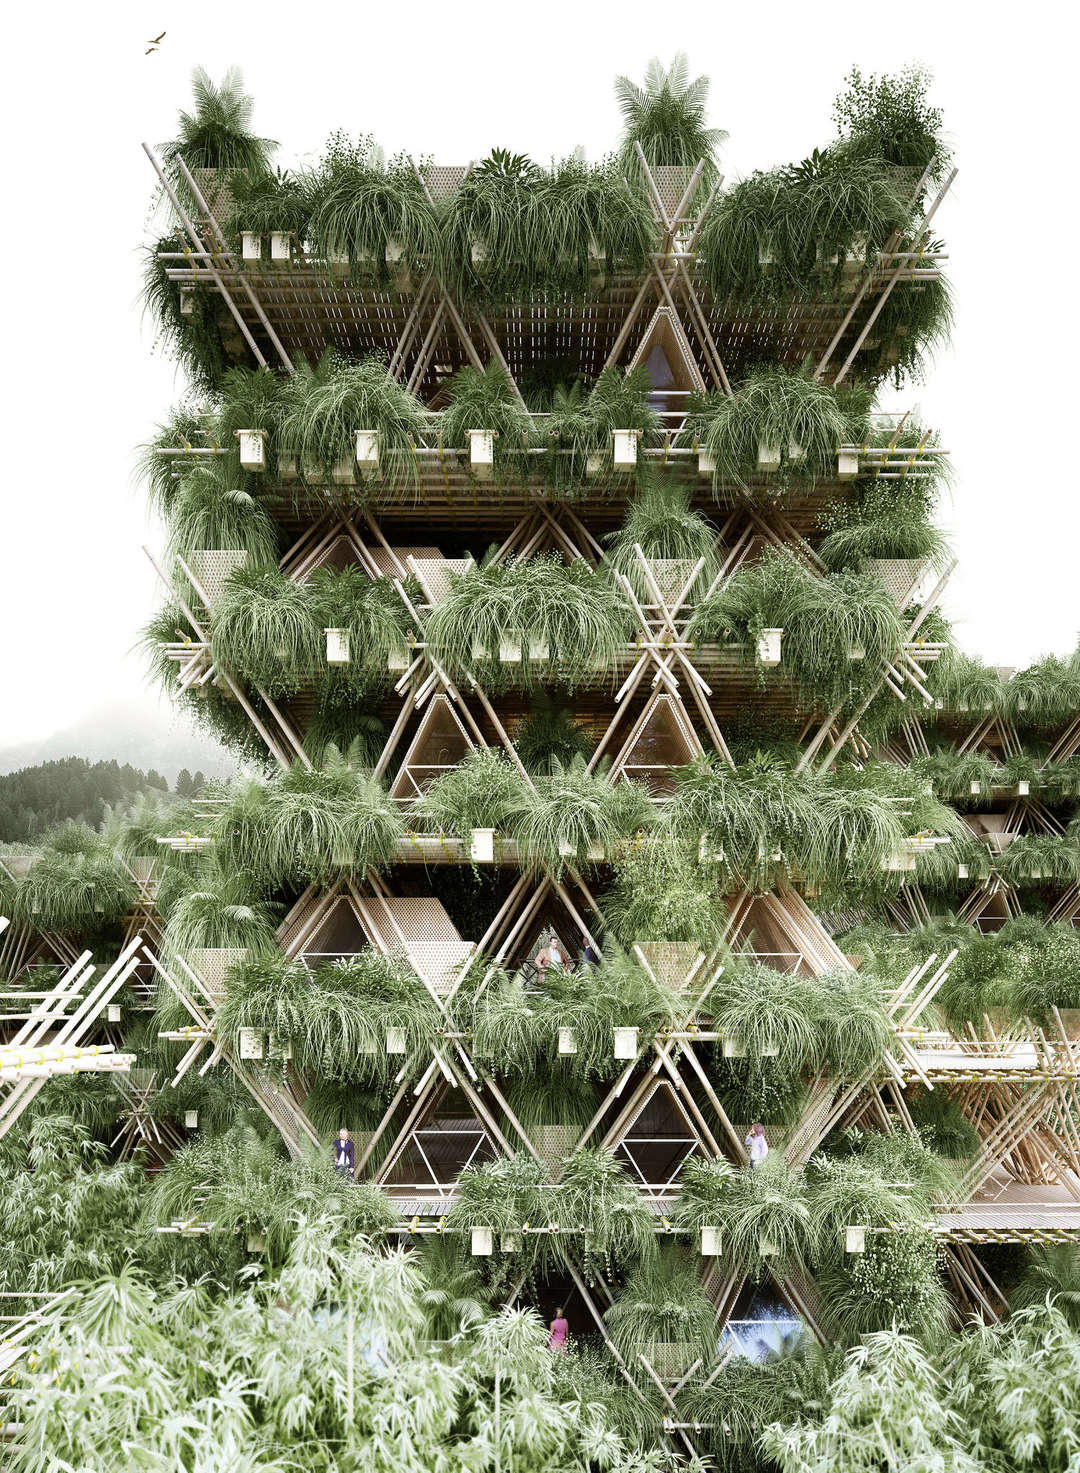 extreme green sustainable architecture